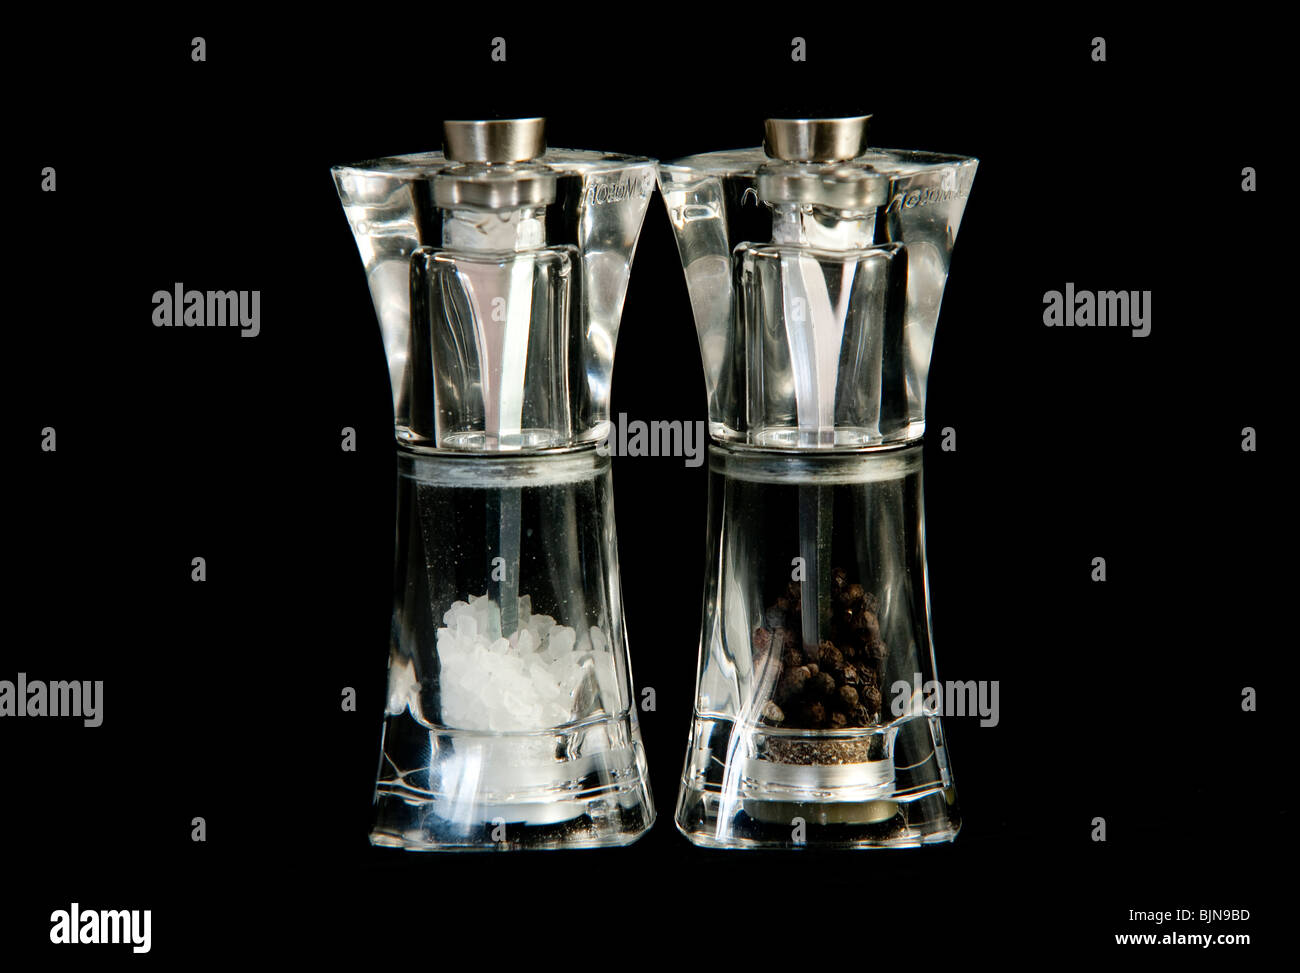 Salt and pepper mills isolated on black - Stock Image